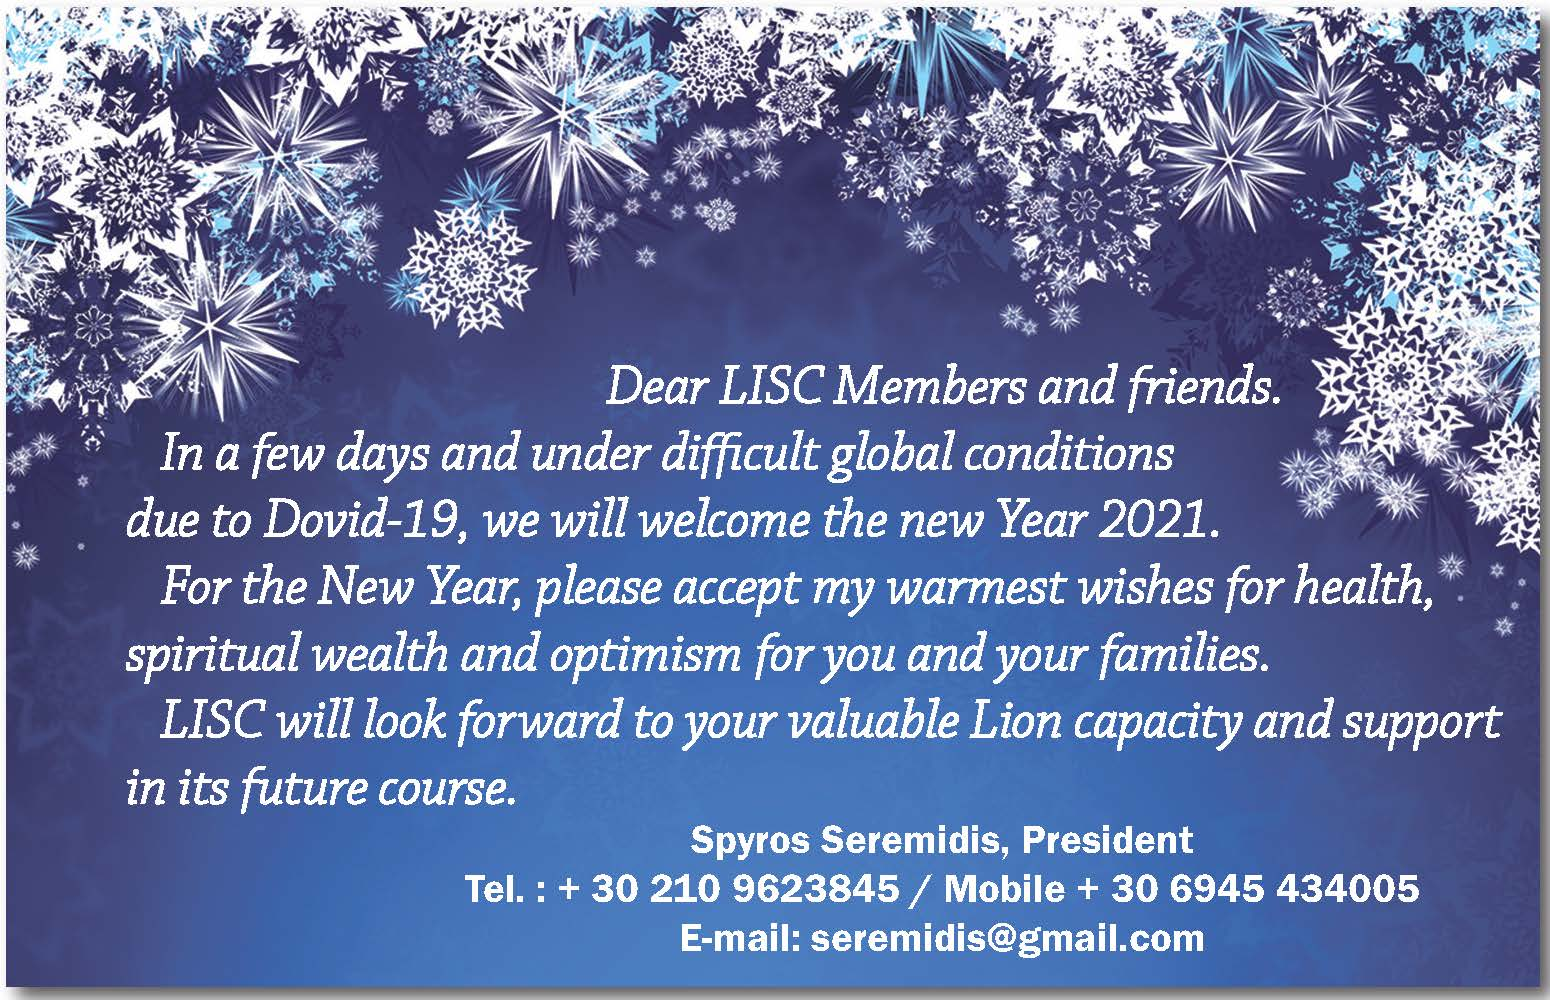 wishes for the LISC members and friends for the coming New Year 2021.